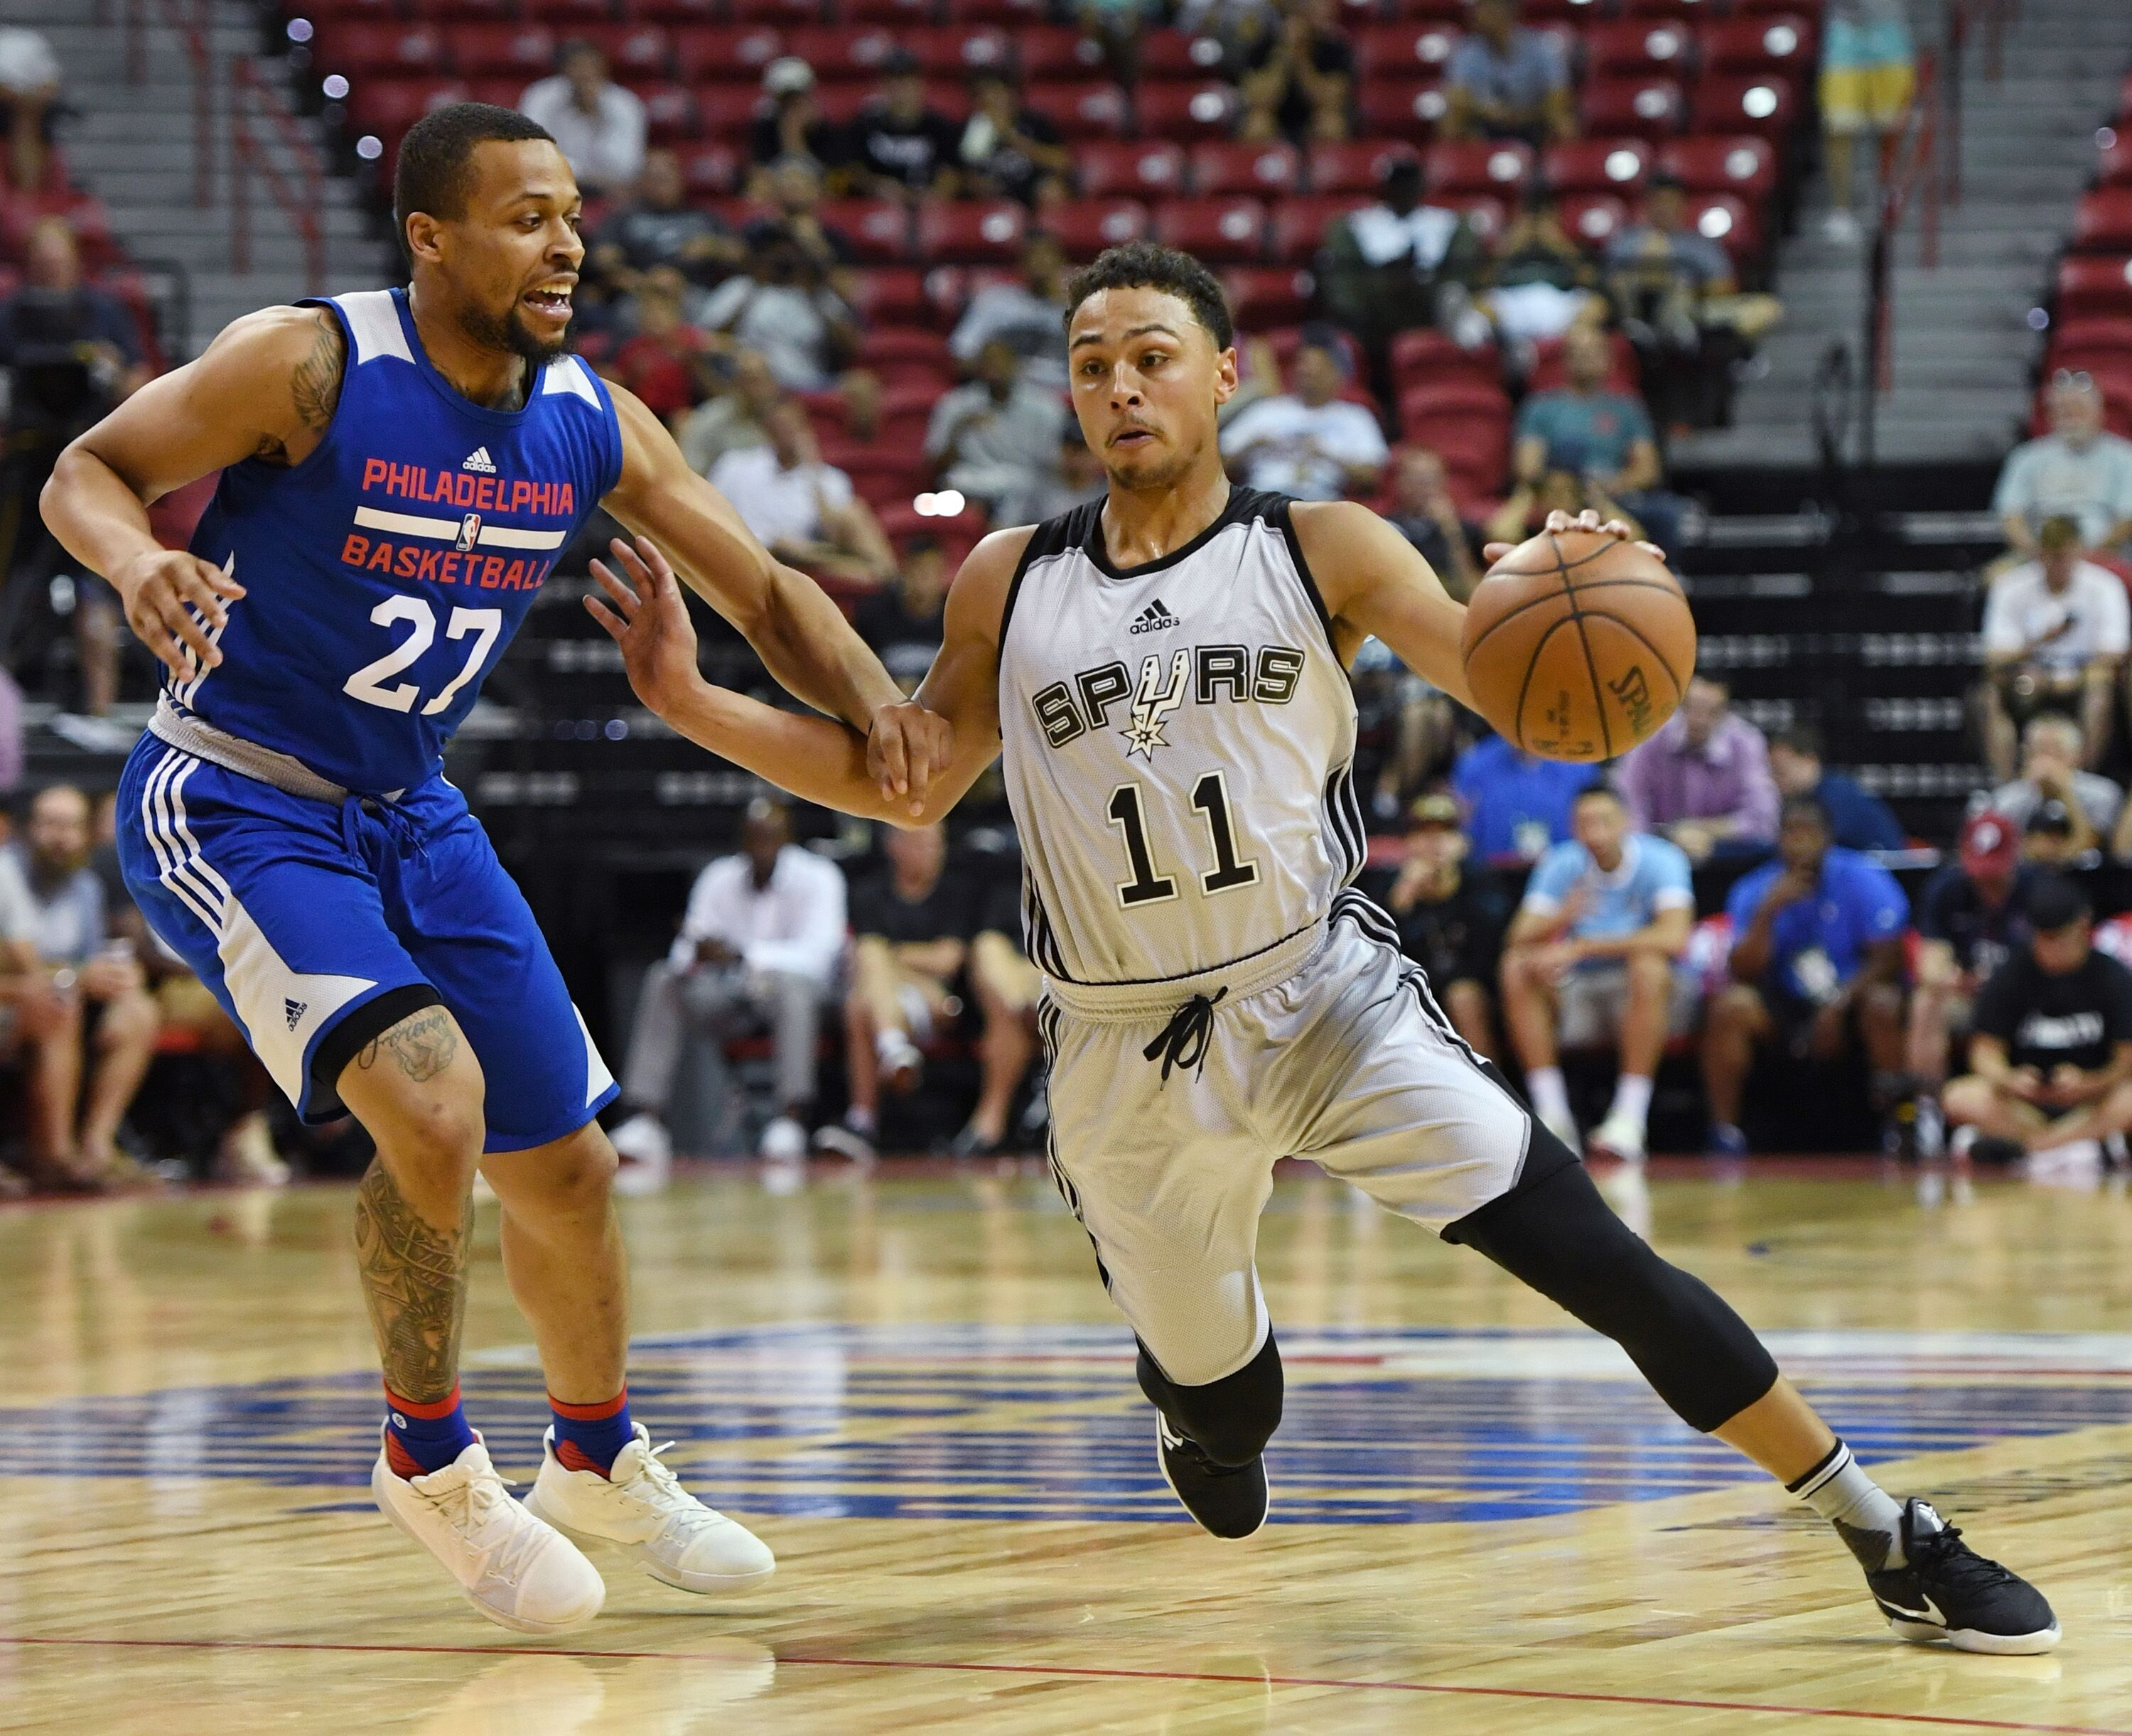 811537014-2017-las-vegas-summer-league-philadelphia-76ers-v-san-antonio-spurs.jpg